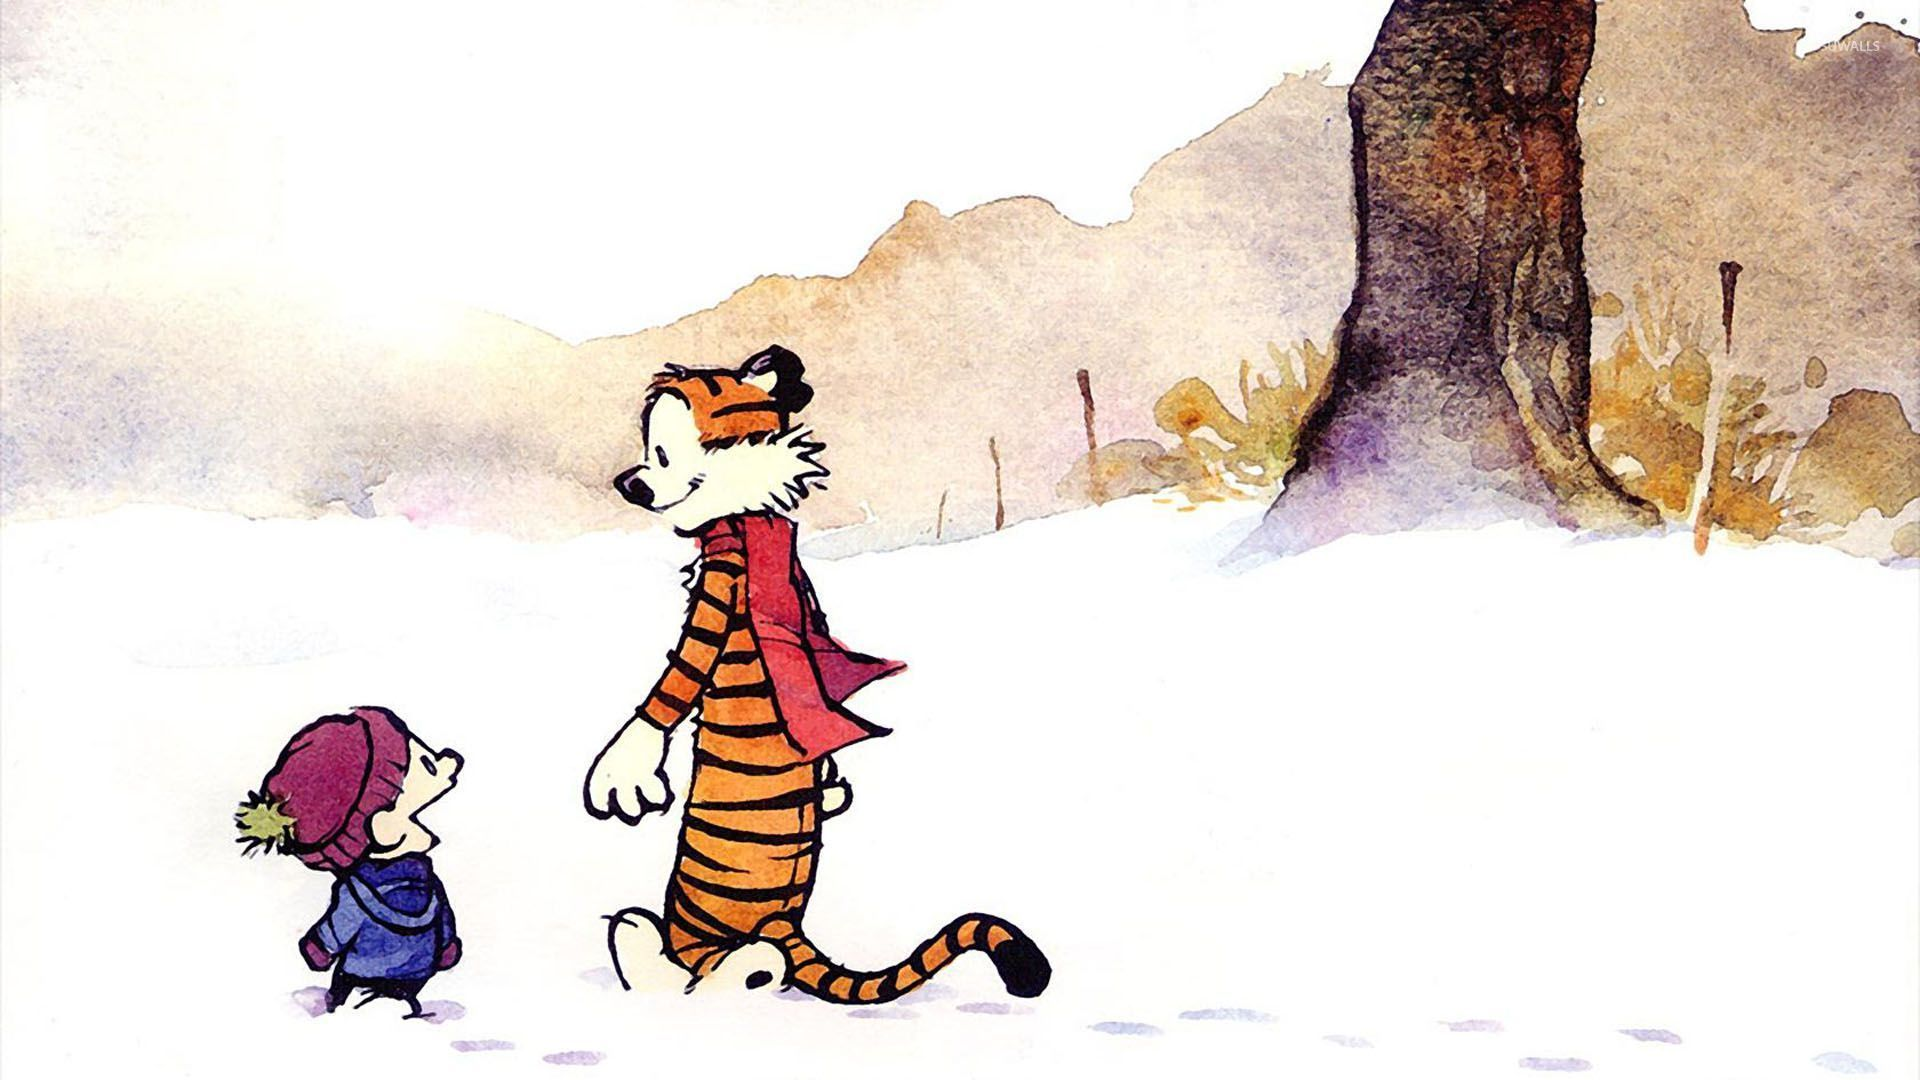 81 Calvin &amp- Hobbes wallpapers optimized for 1920x1080 : pics